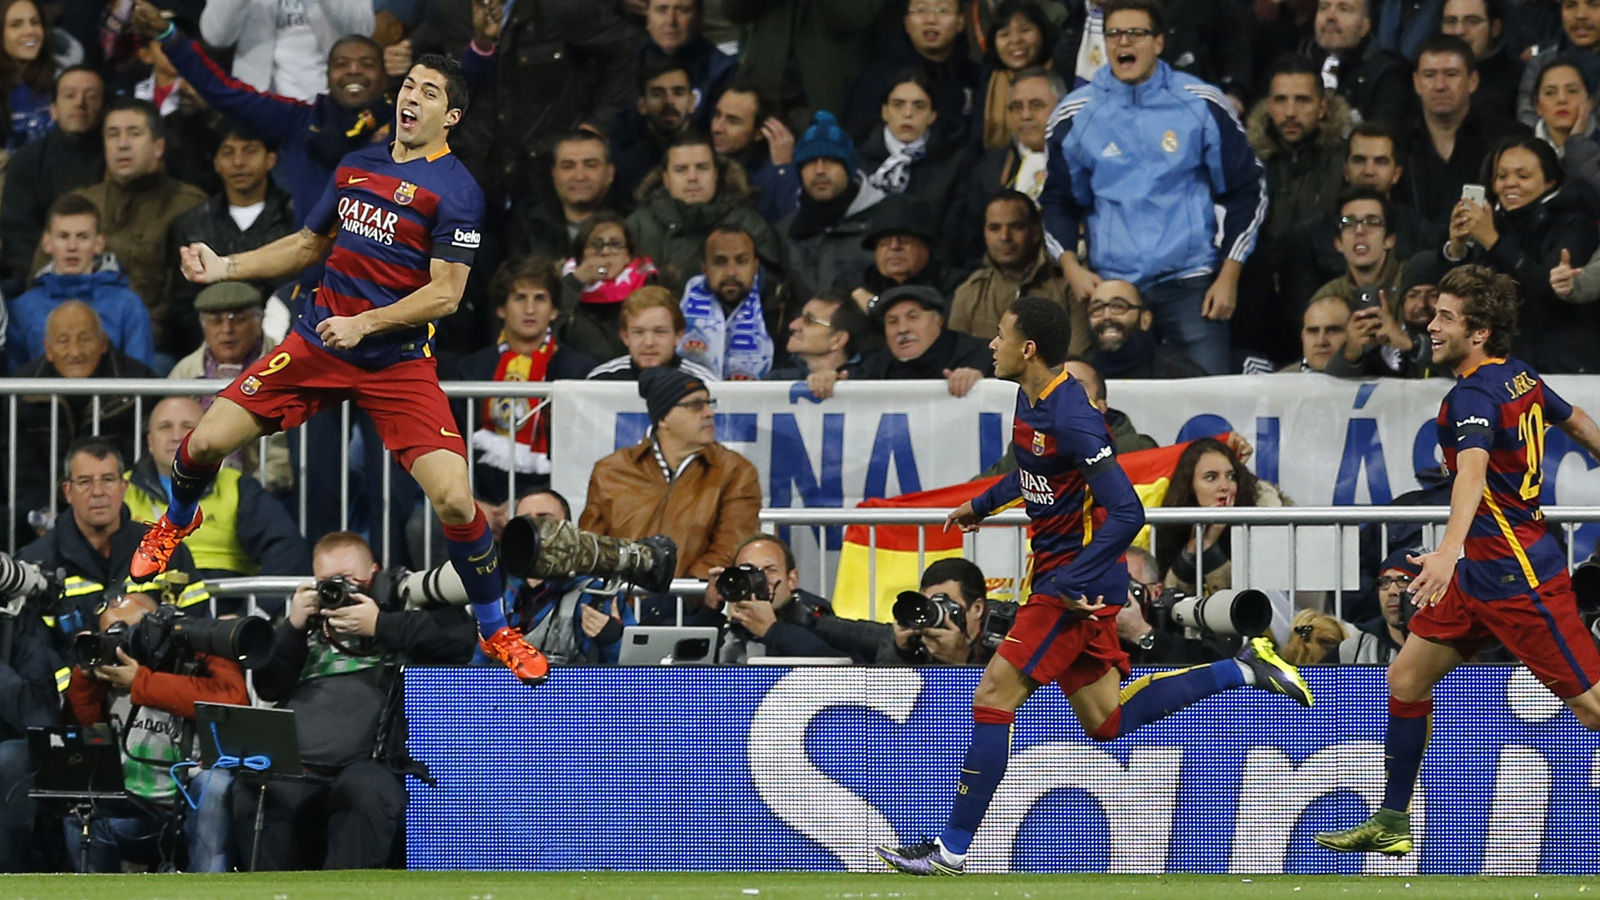 Barcelona's Luis Suarez leaps for joy after scoring in a 4-0 rout at Real Madrid.